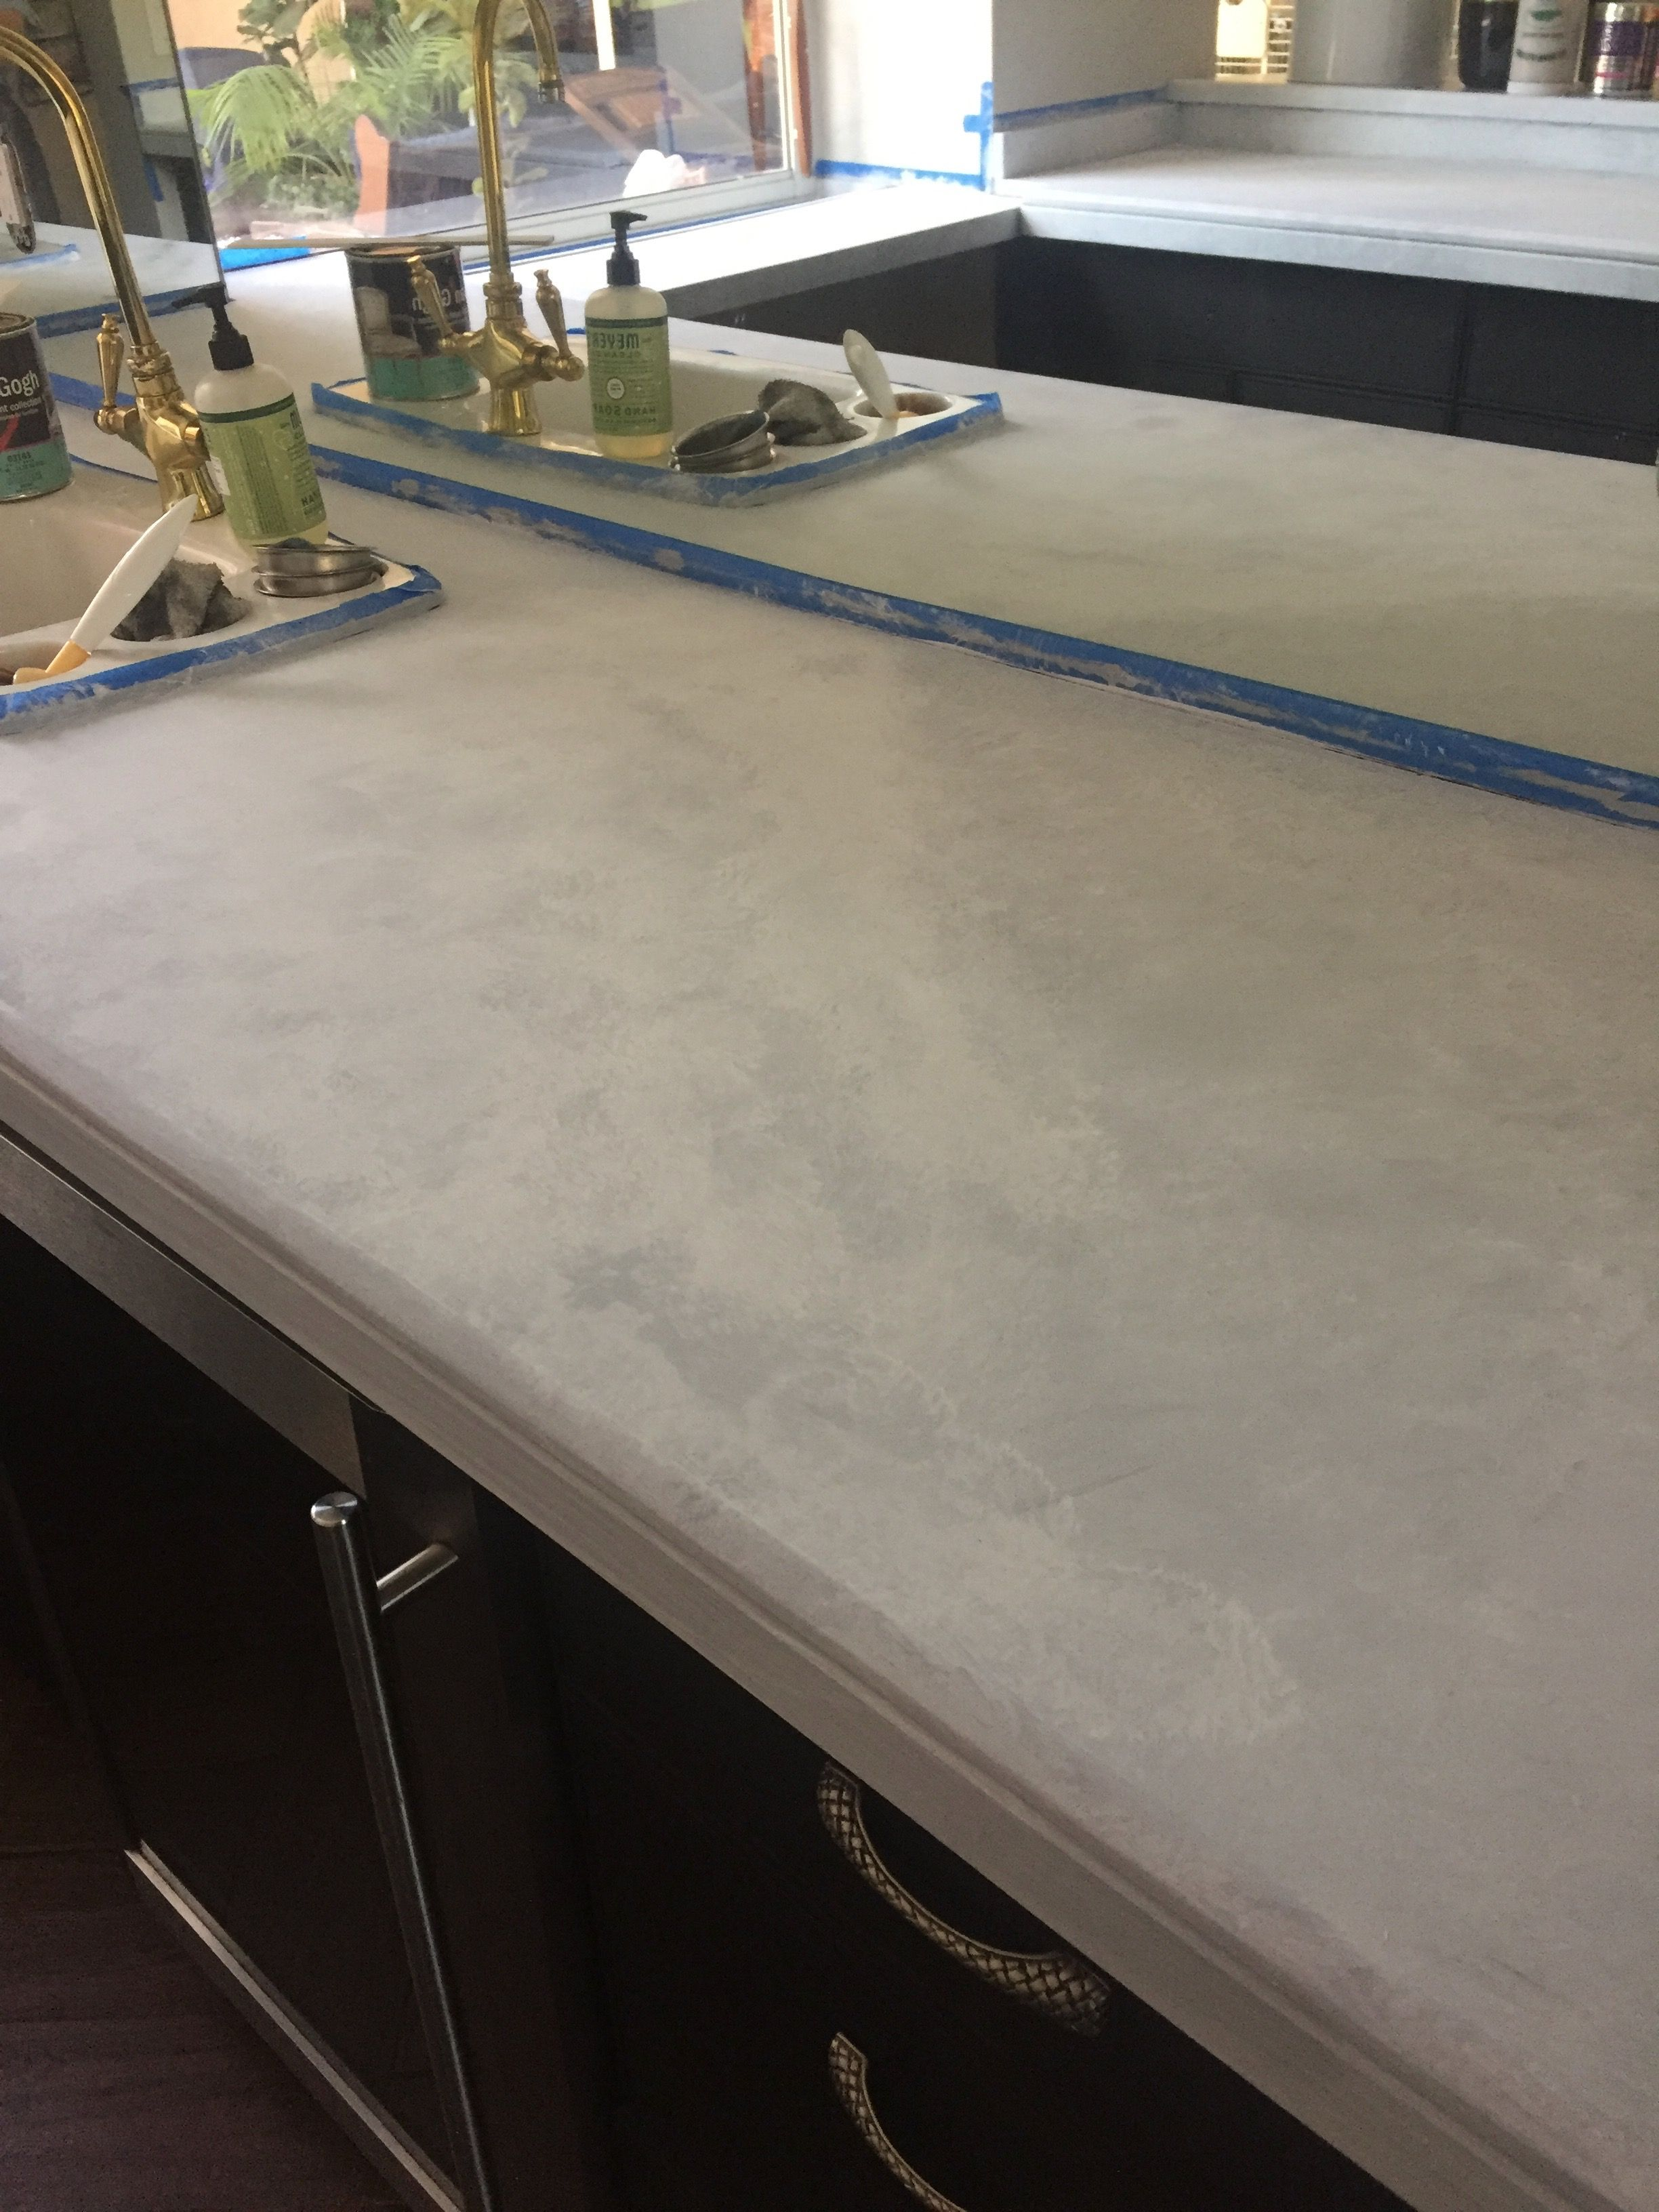 Can You Paint Over Granite Counters Painted Granite Countertops